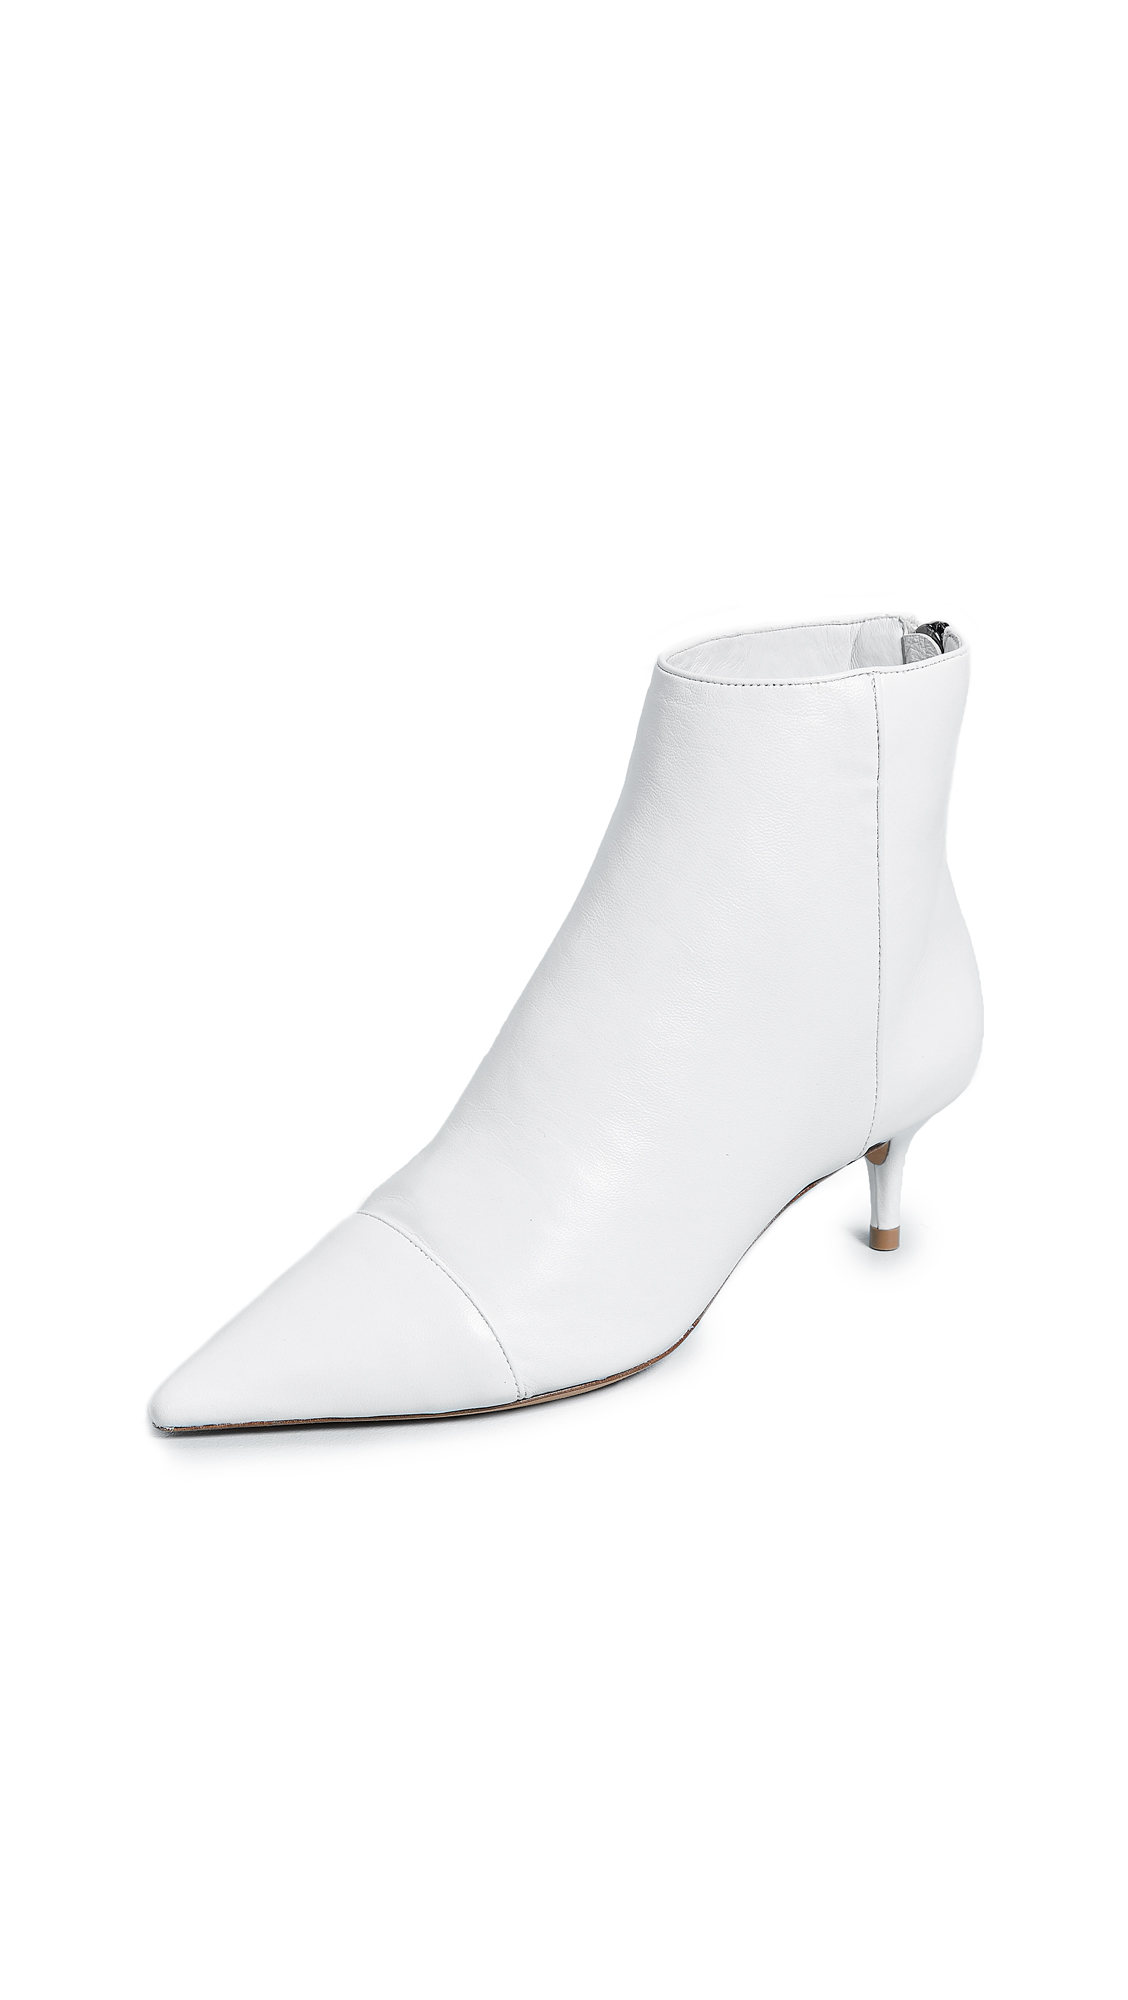 Alexandre Birman Kittie Booties - White